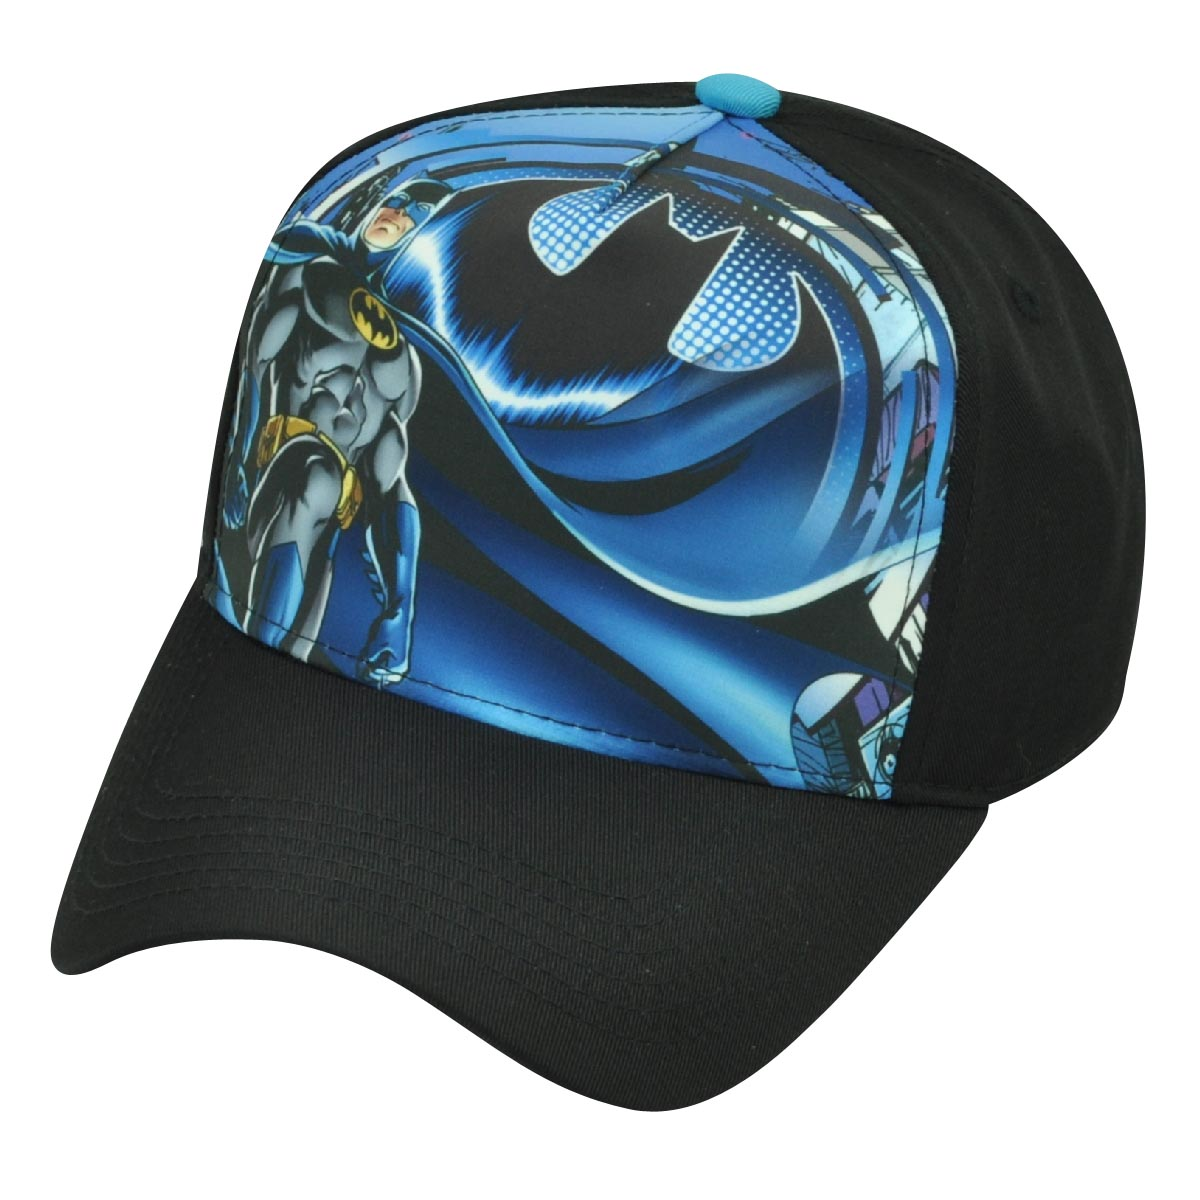 50314dc1e Batman Cartoon Snapback DC Comics Book Warner Bros Hat Cap Black Super Hero